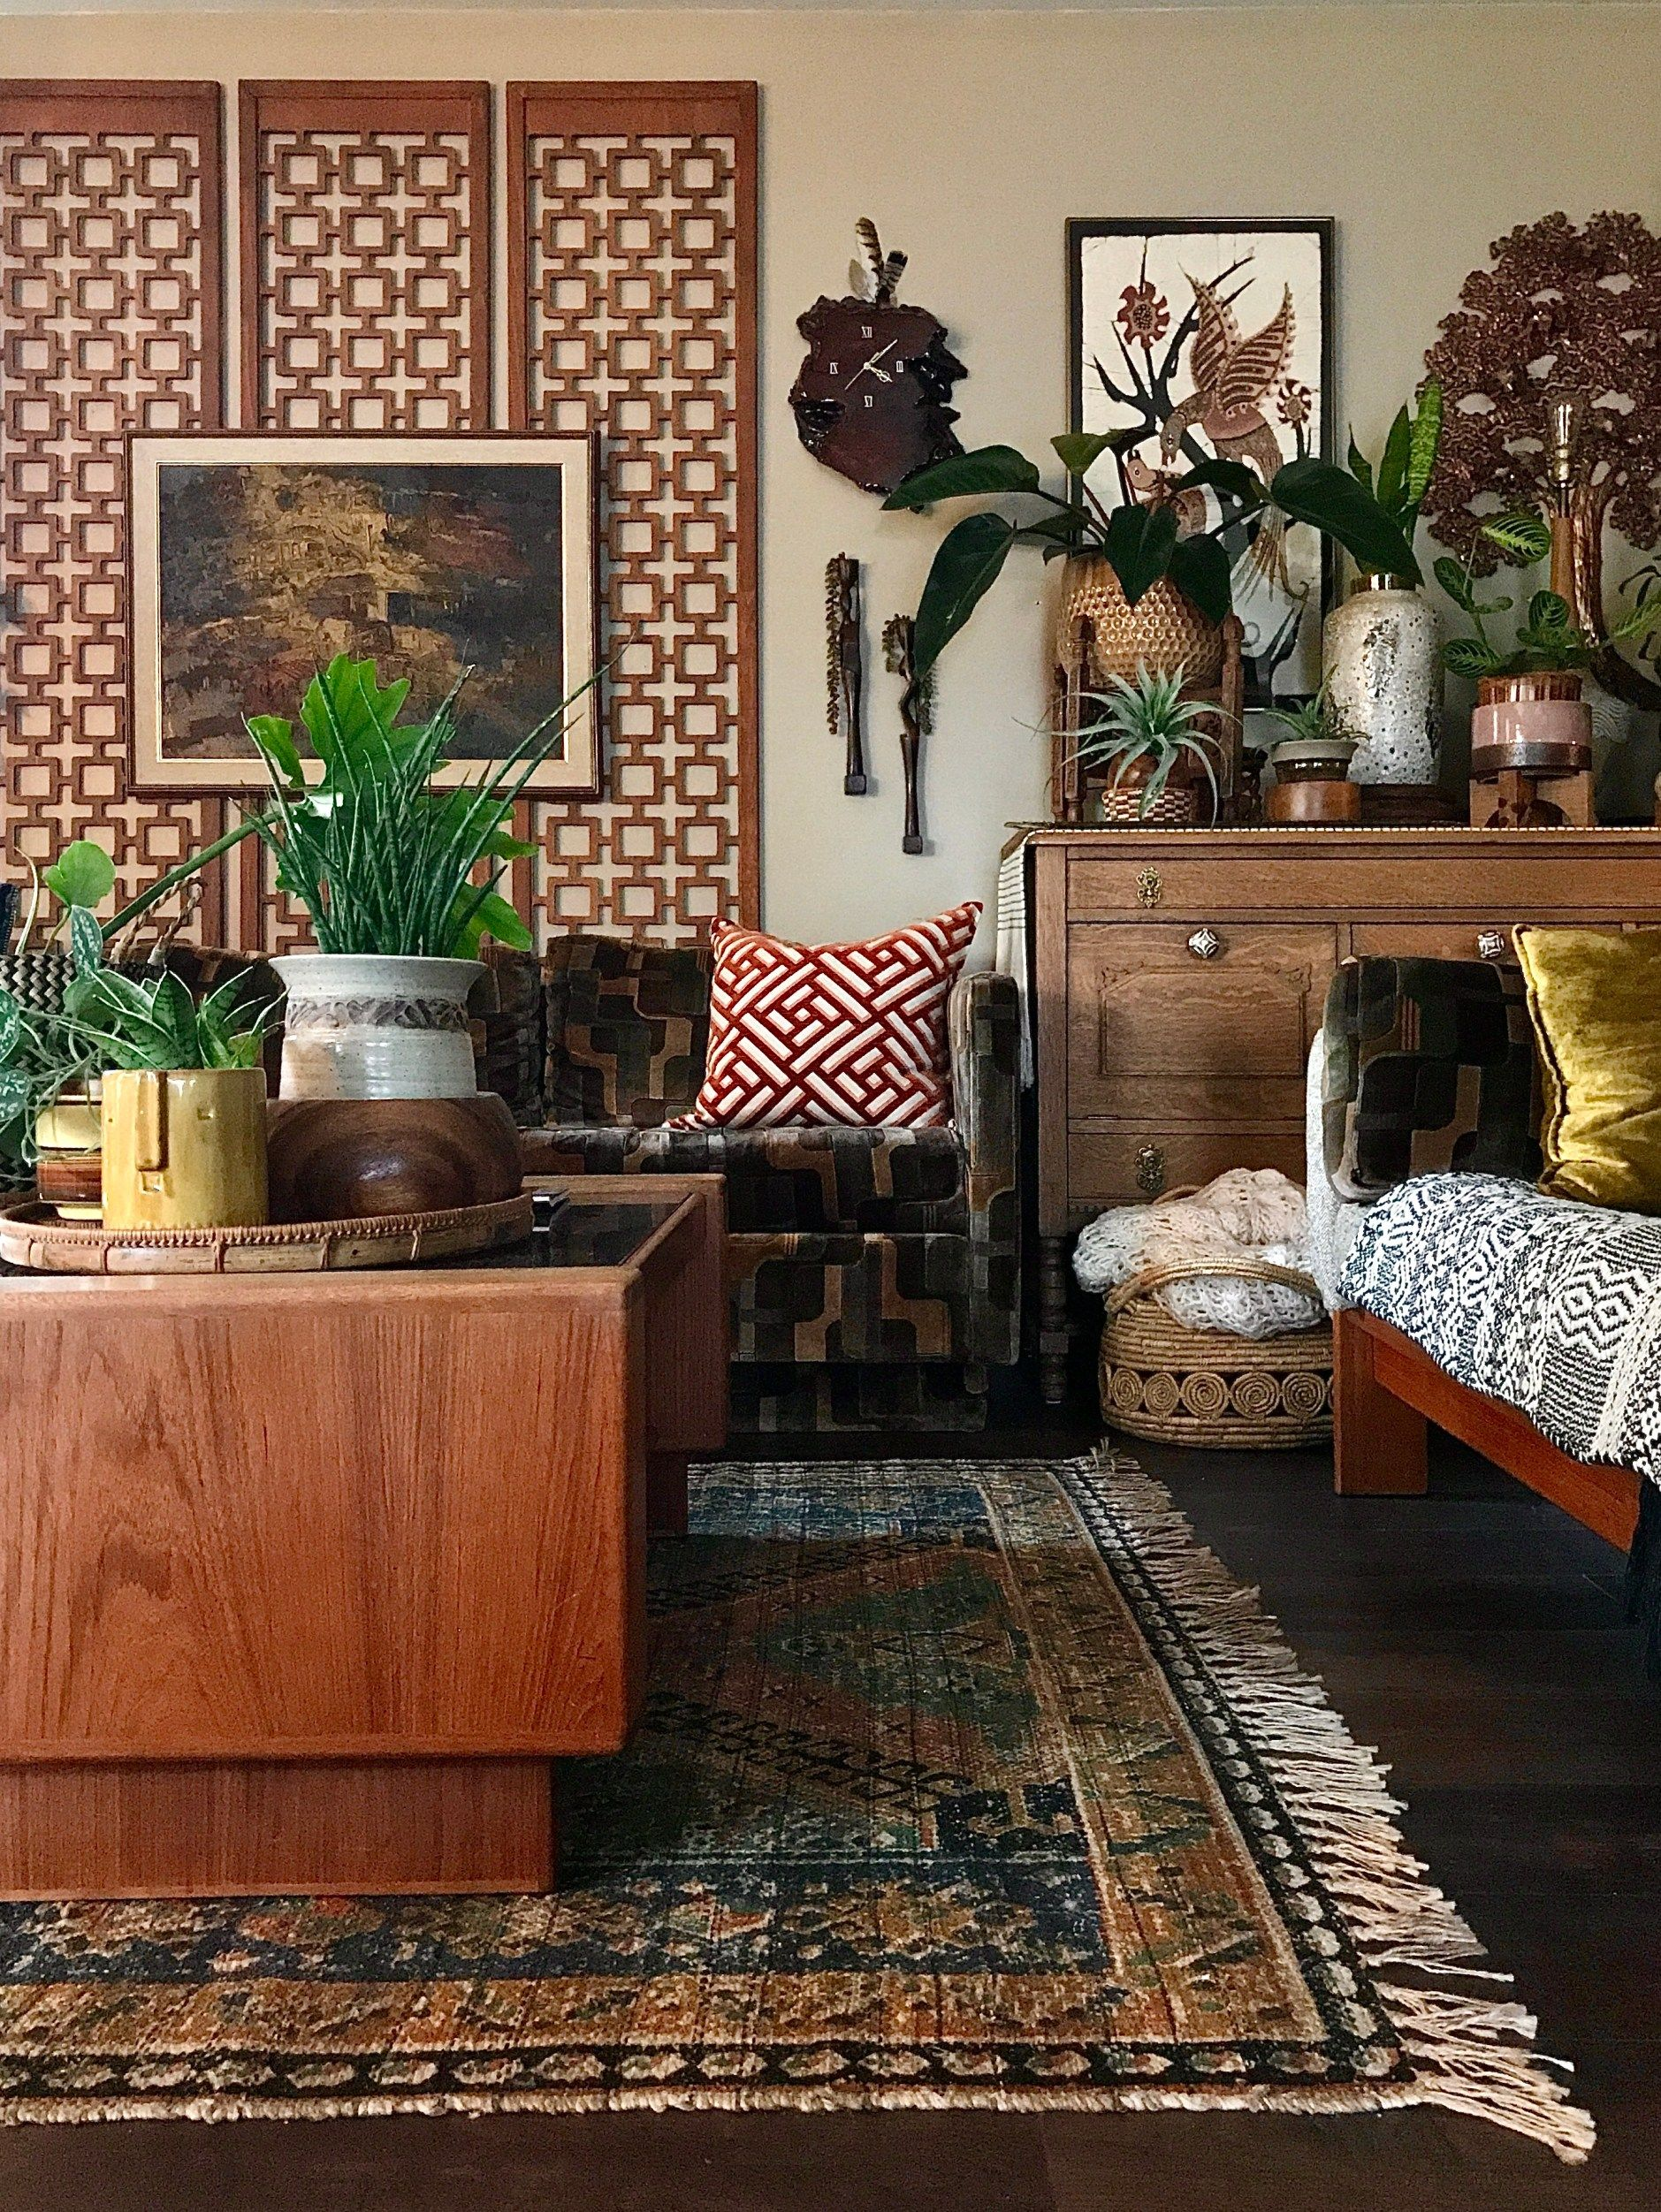 The '70's Vibe Plant Loving Home of Audrey Plew – The Interior Editor